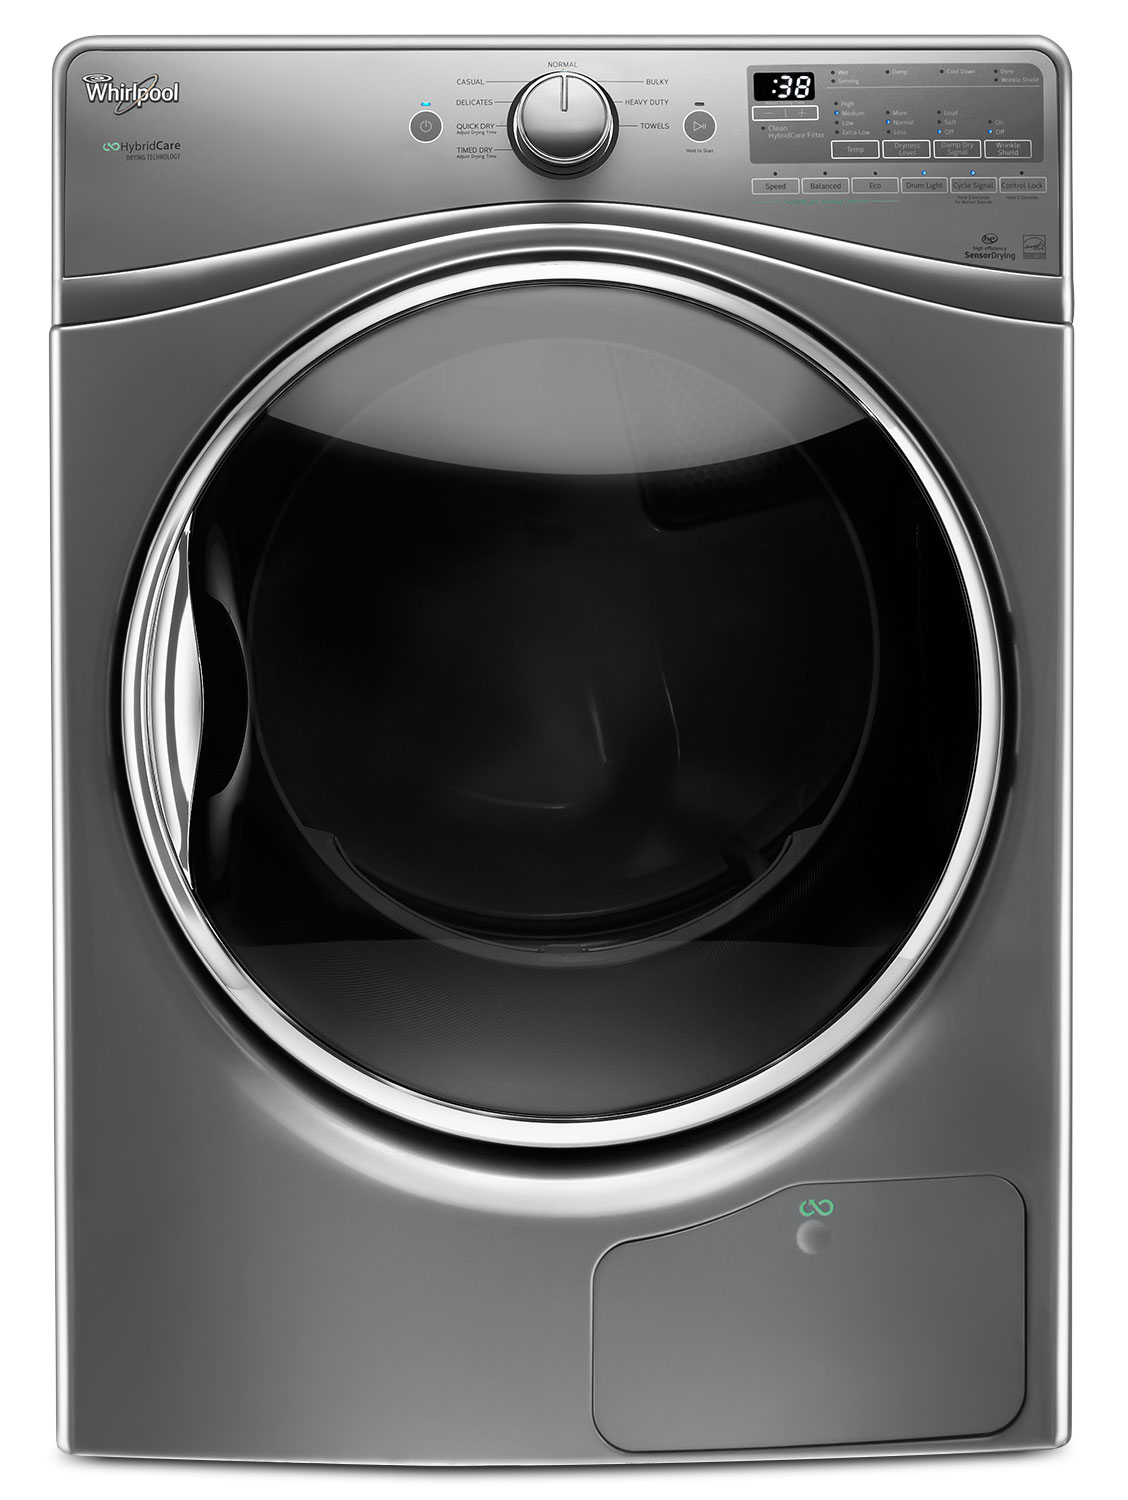 Maytag 7 4 cu ft ventless electric dryer ywed9290fc - Maytag whirlpool ...